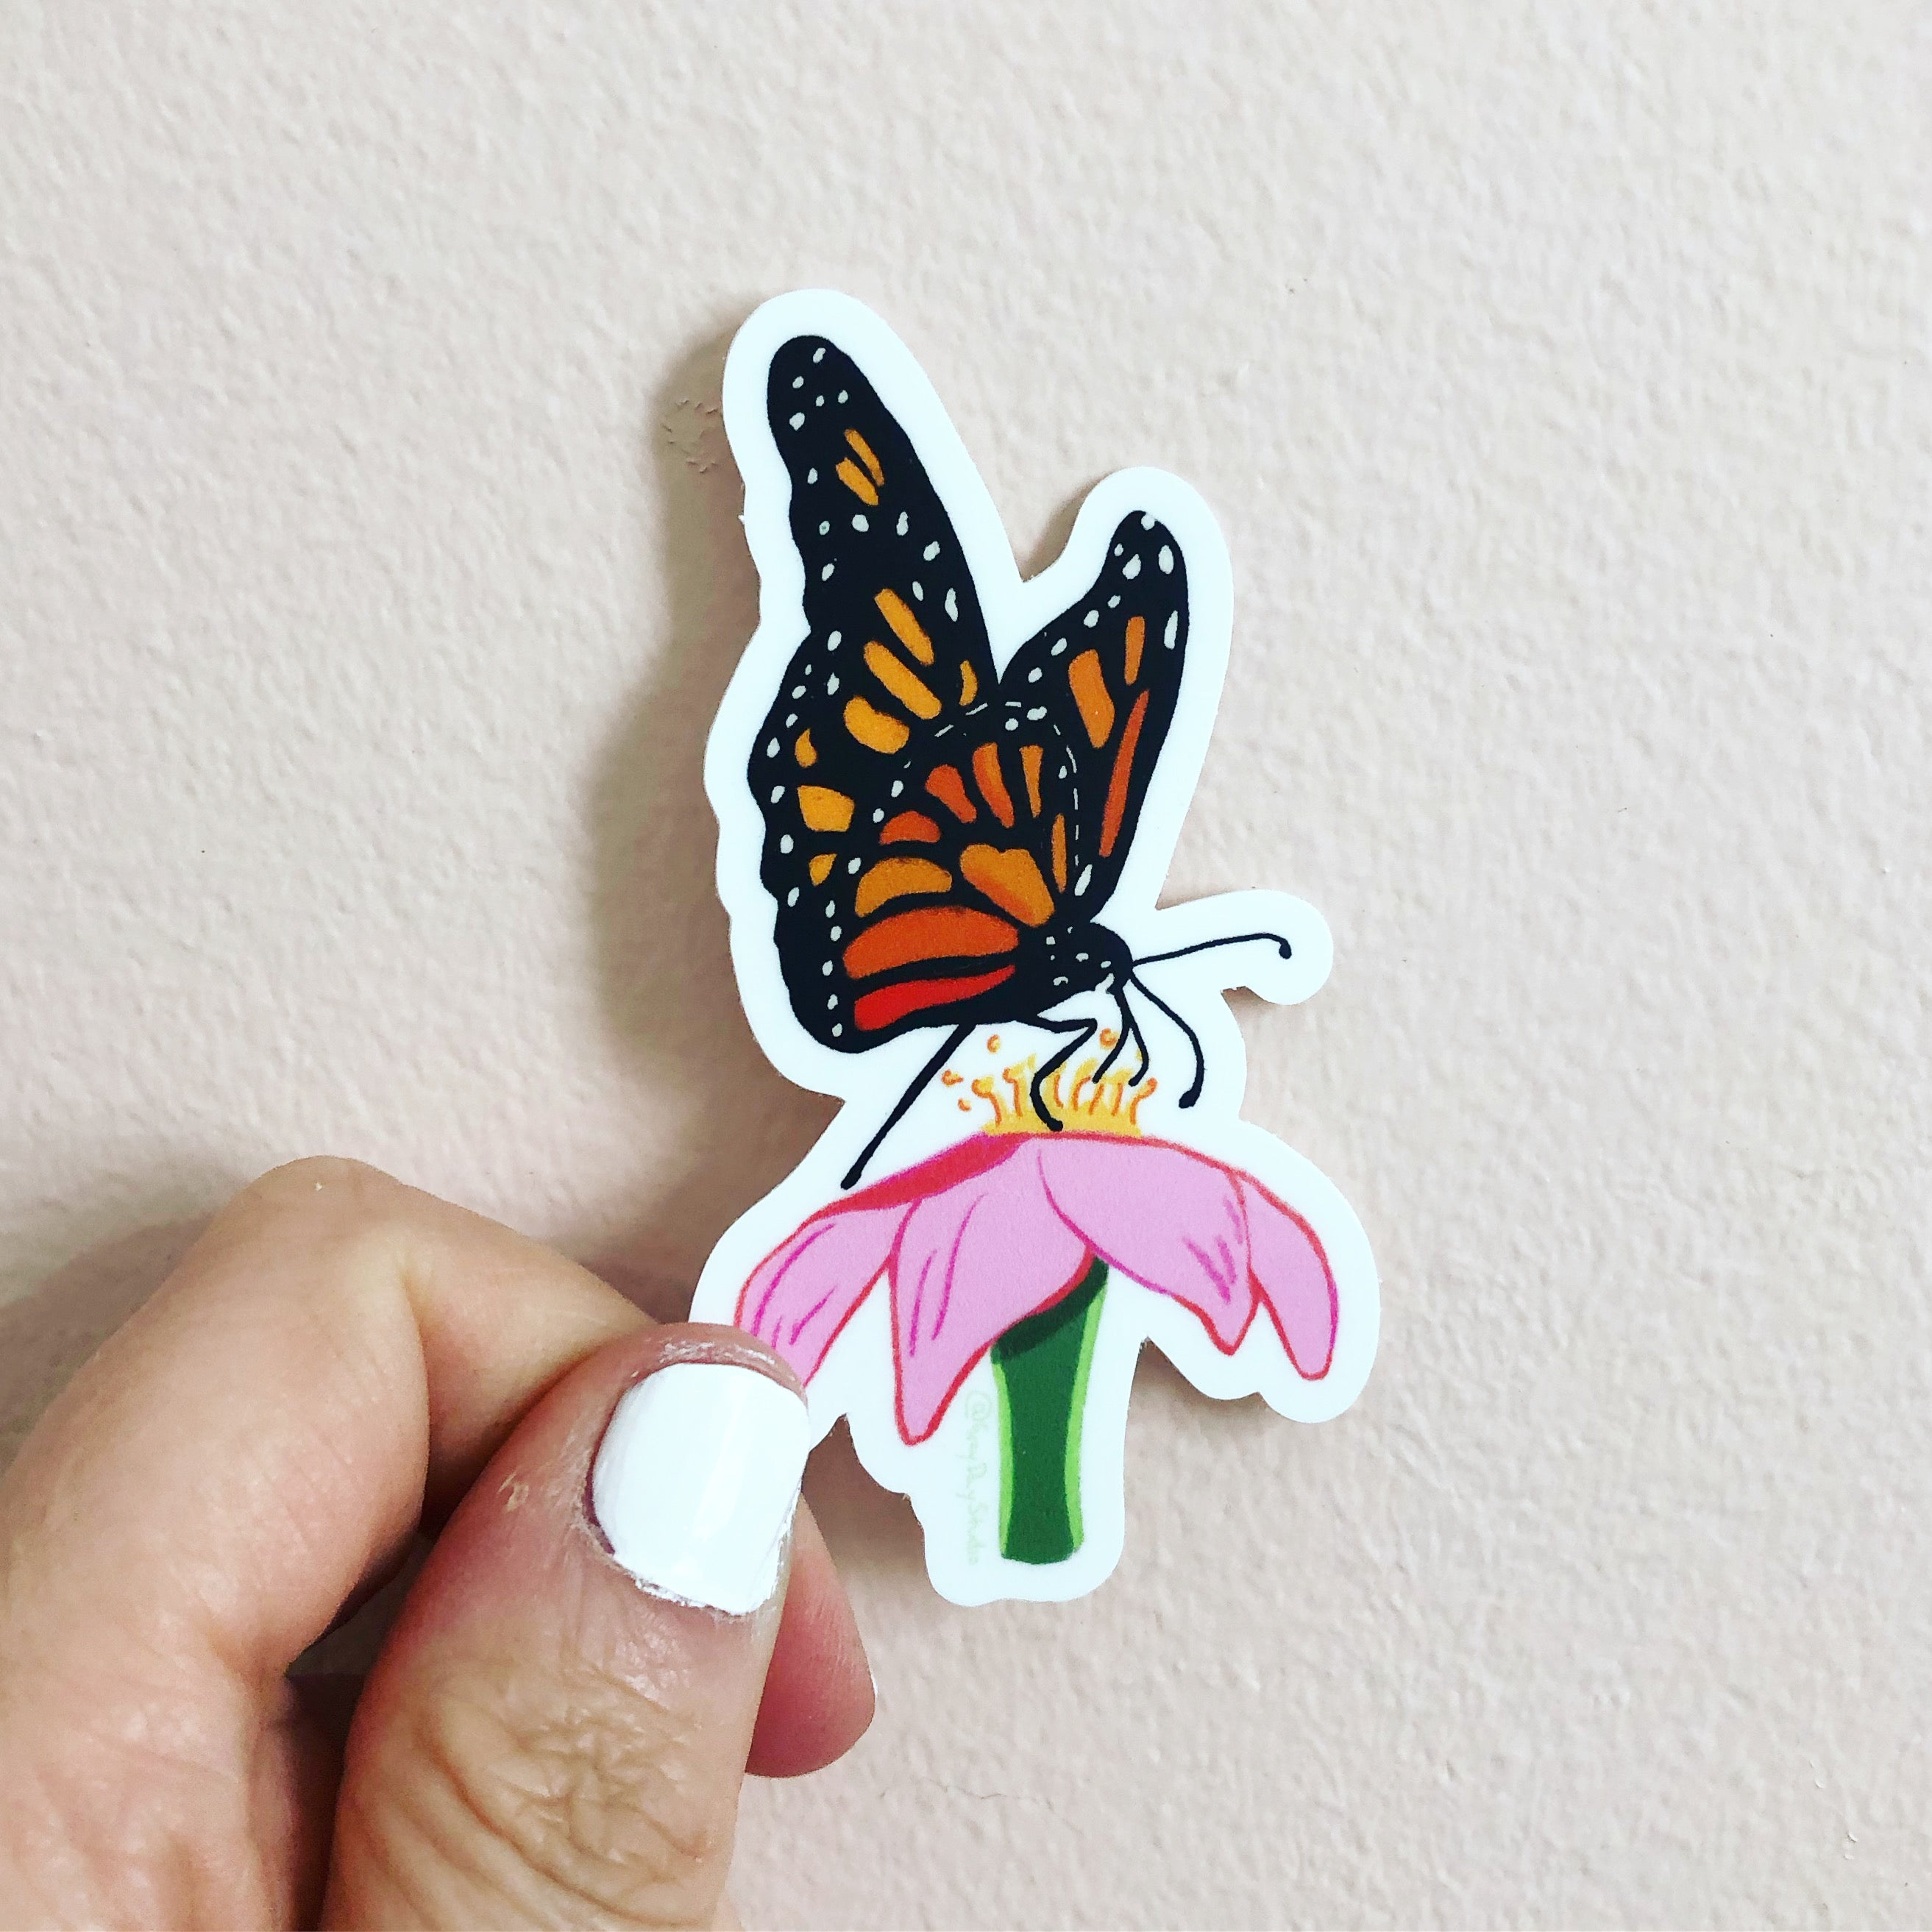 Moarch butterlfy sticker, pink zinnia and butterfly sticker, by Abigail Gray Swartz